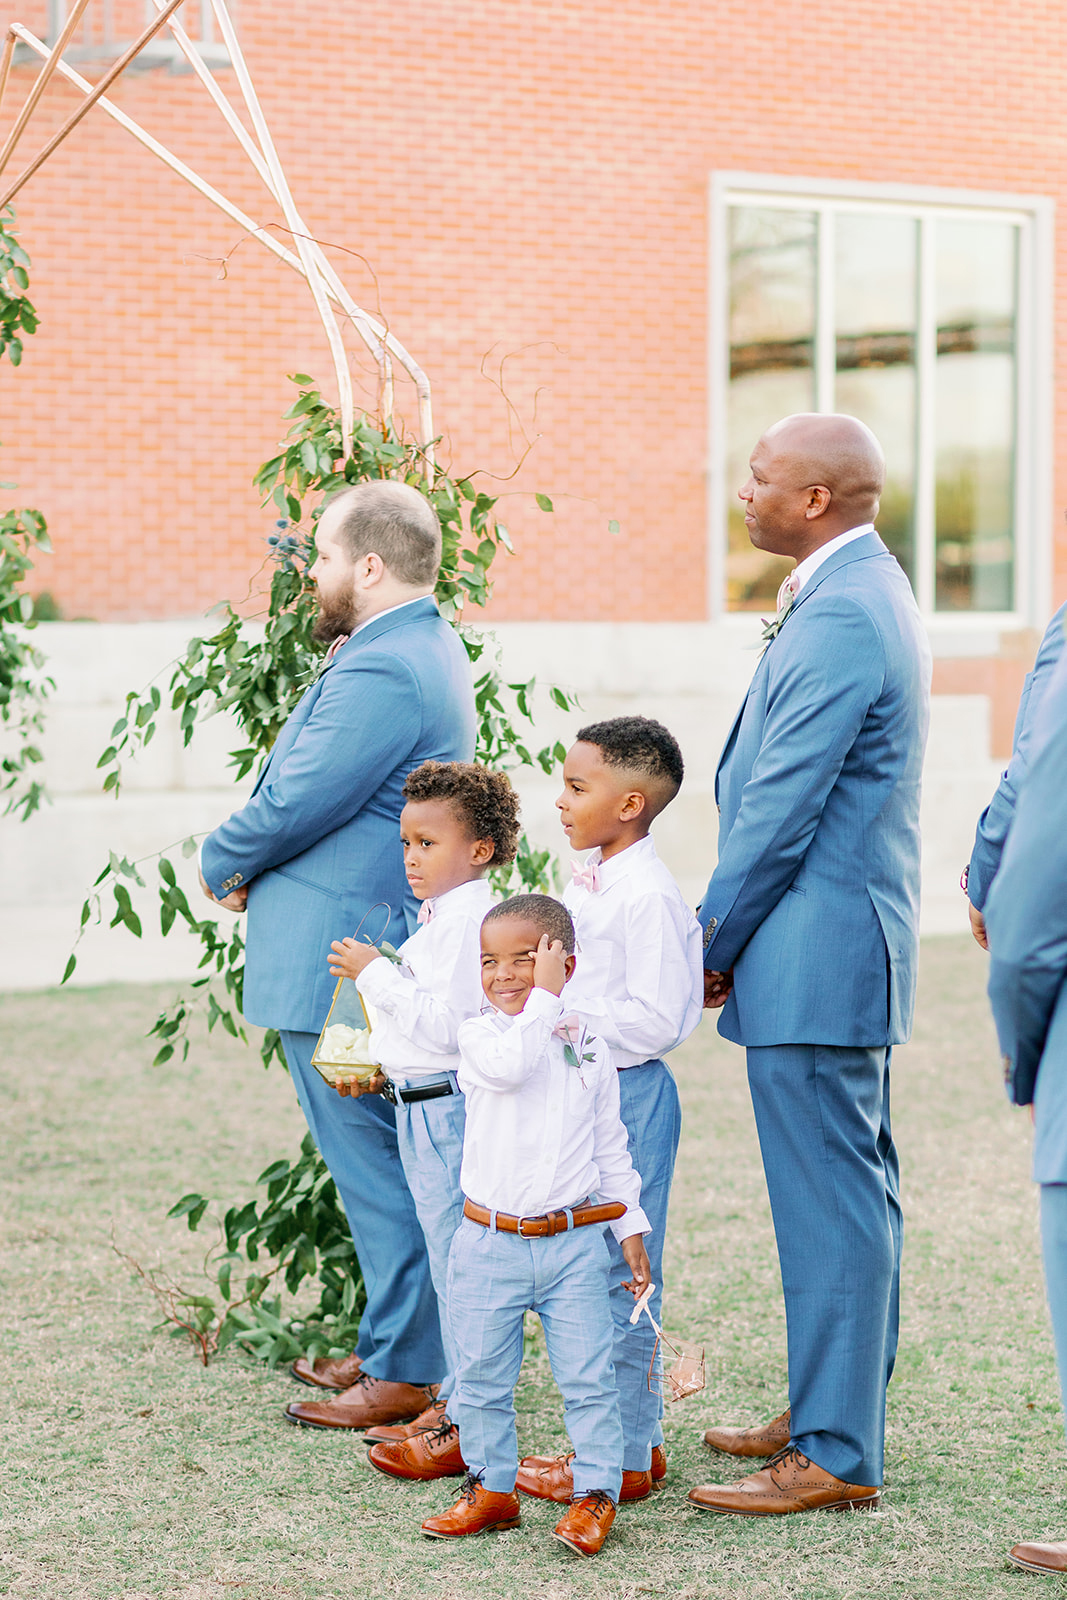 groomsmen and ring bearers in blue at wedding ceremony